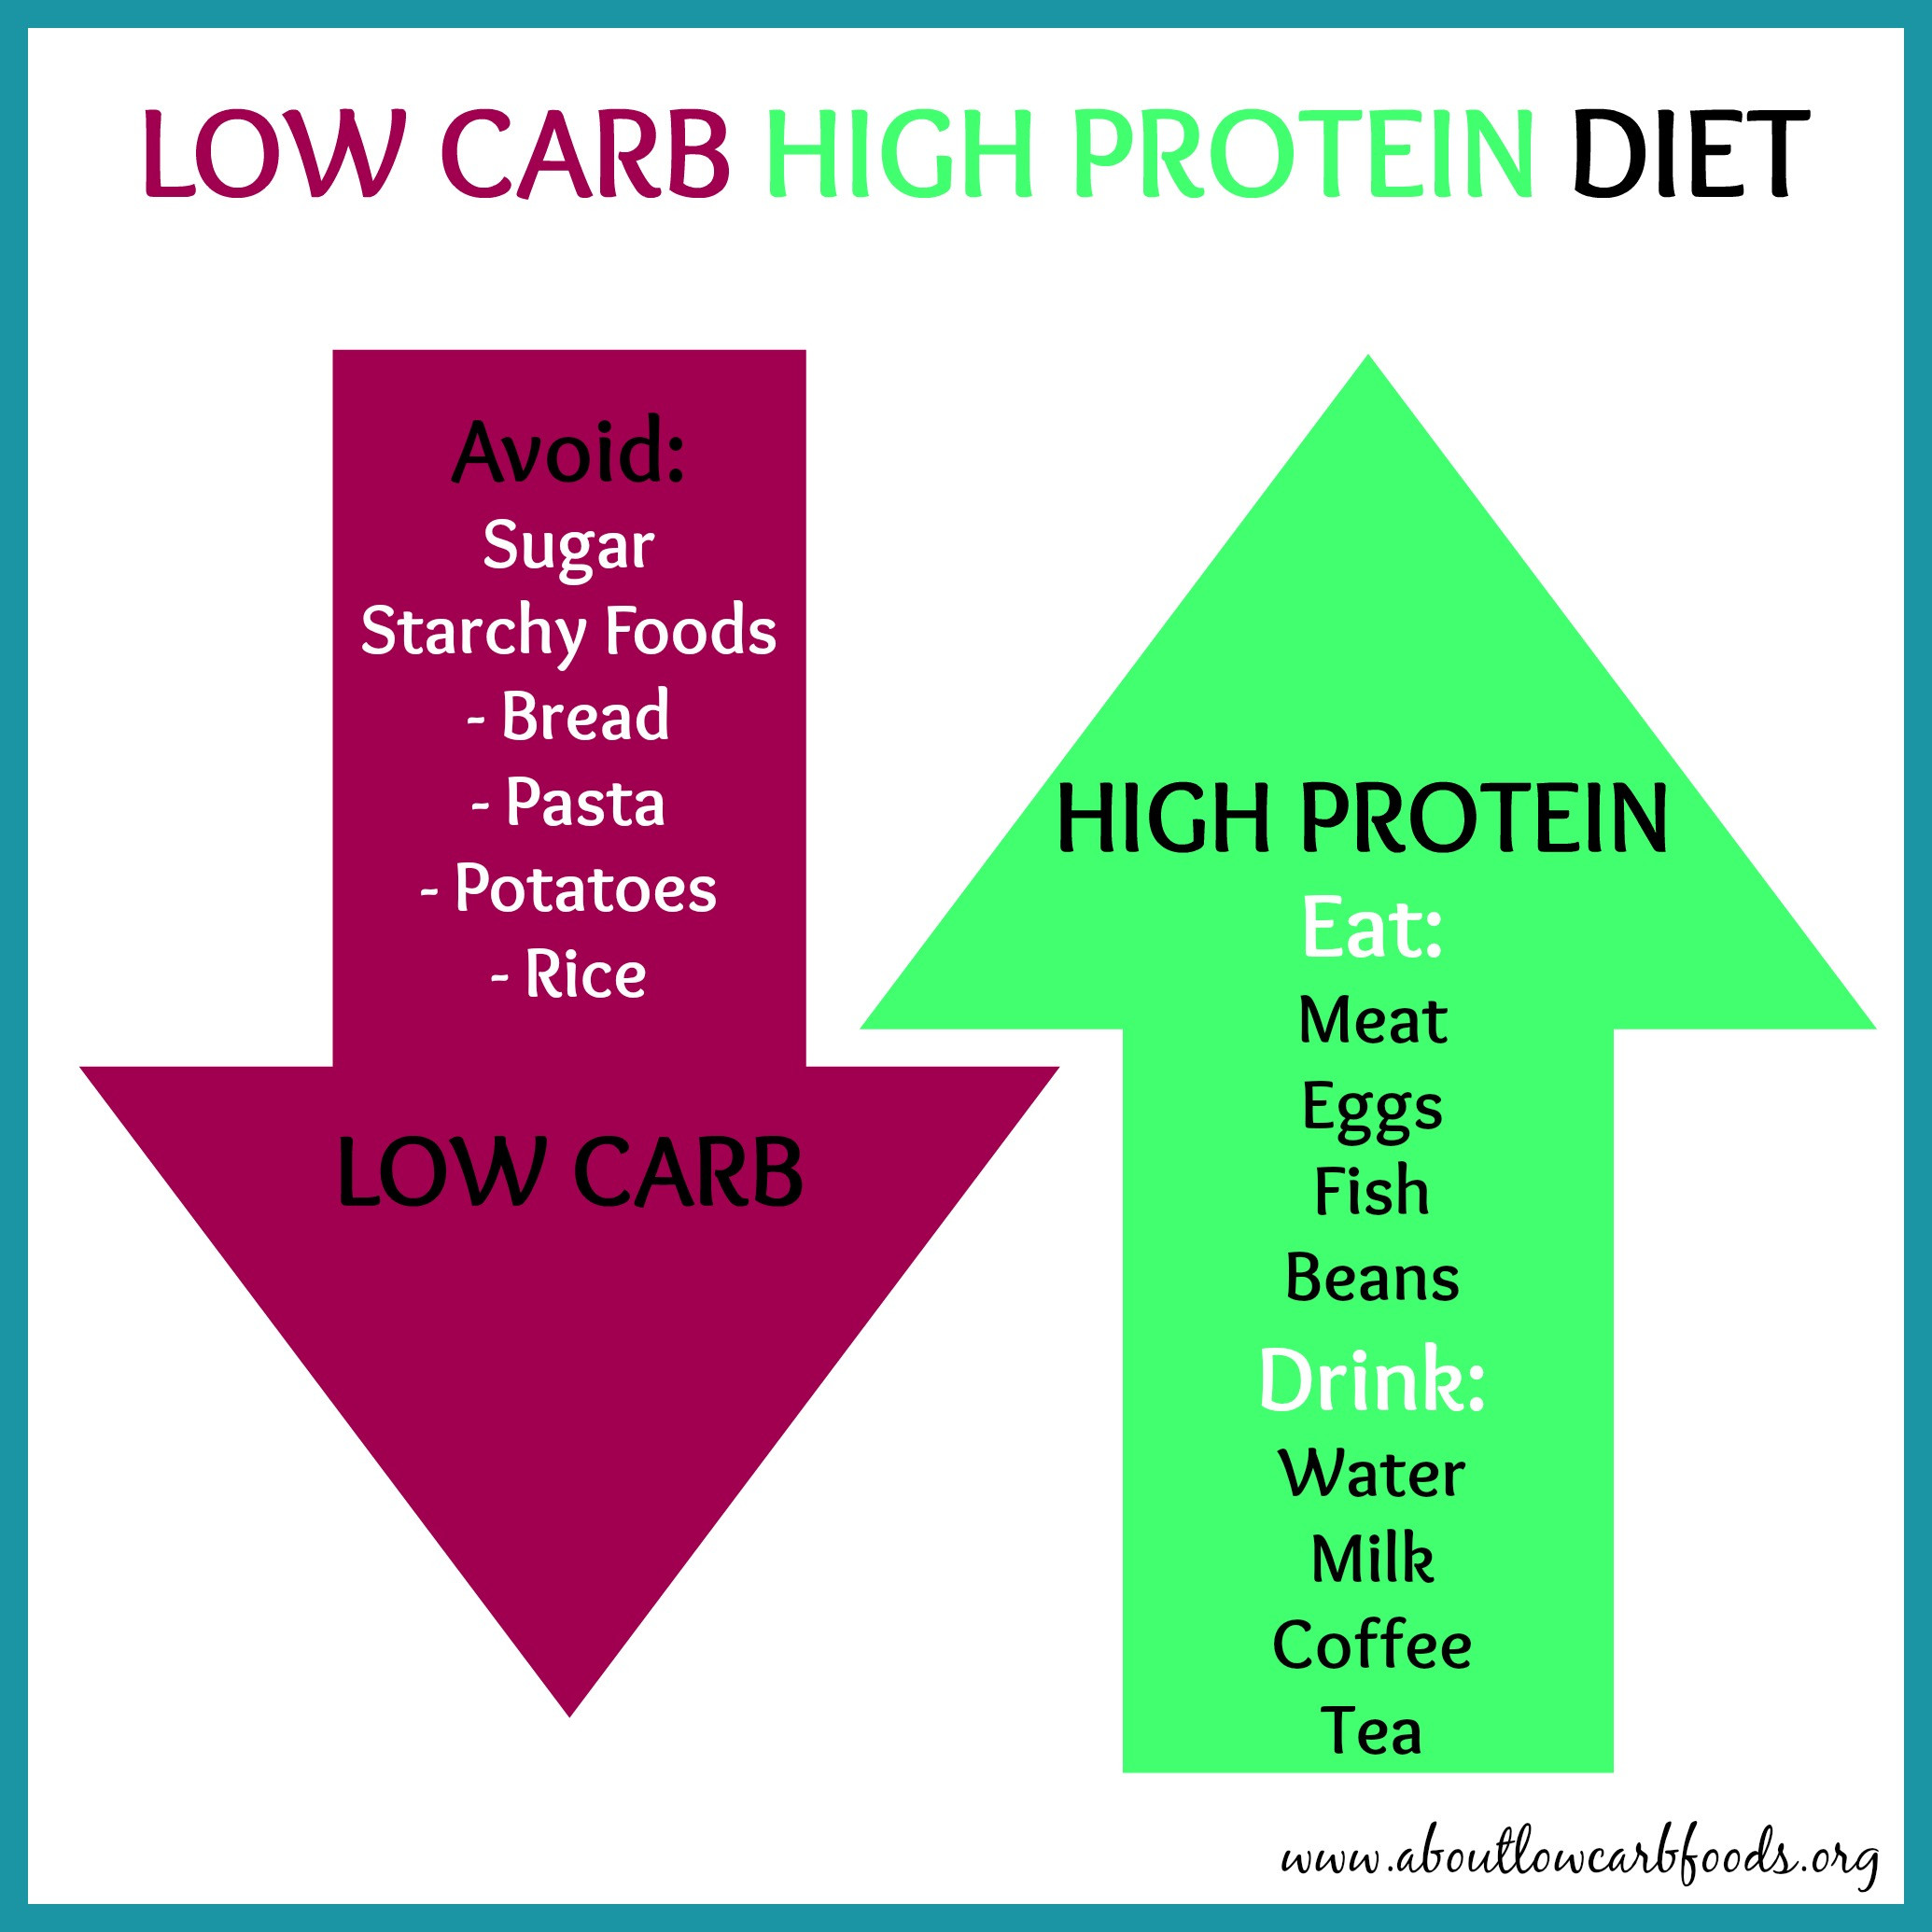 High Protein Low Carb Diet  Are Low Carb Diets worse than High Carb Diets